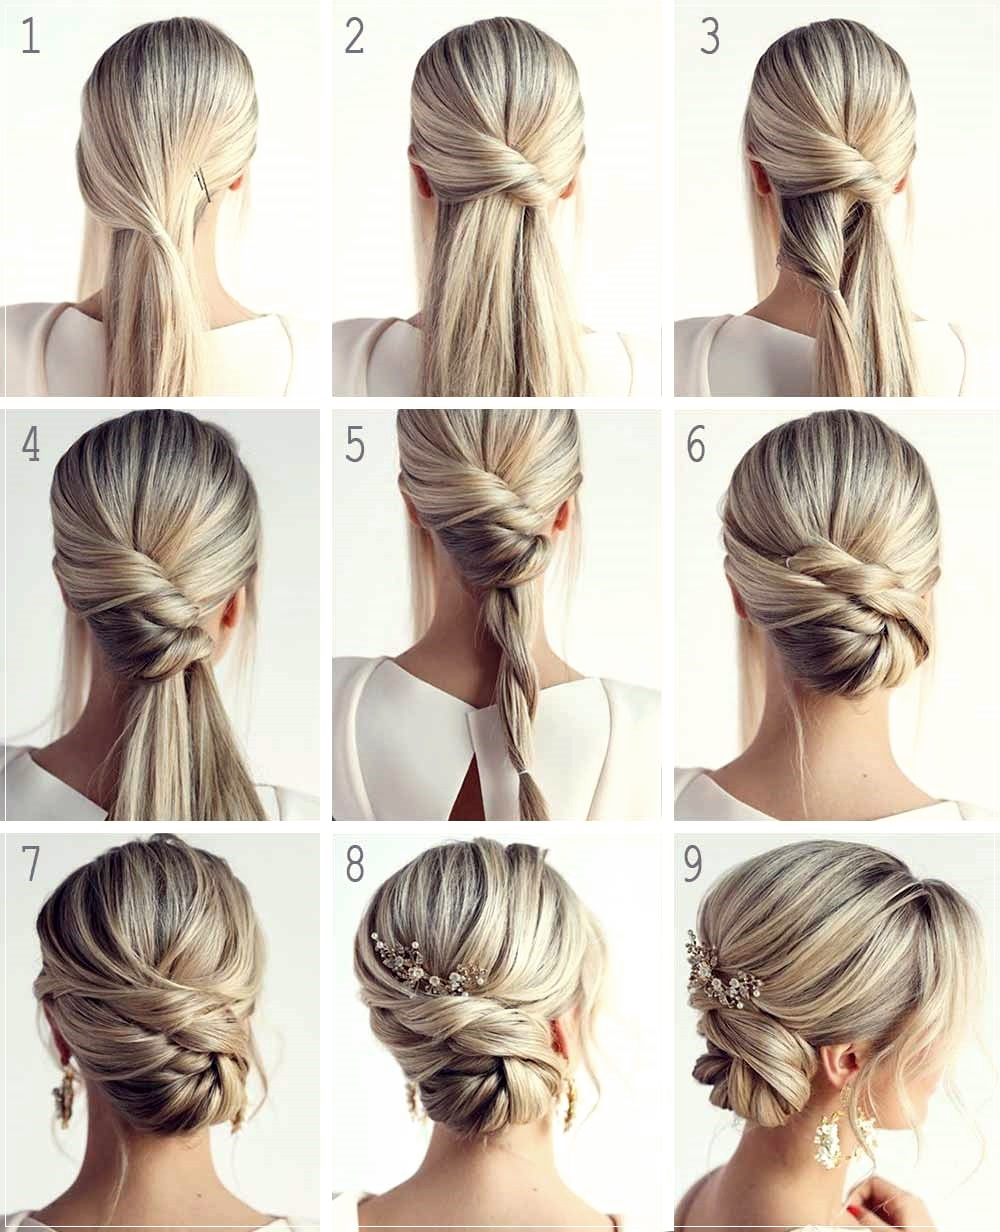 100 Hairstyles For Long Hair: Easy Ideas And Beautiful